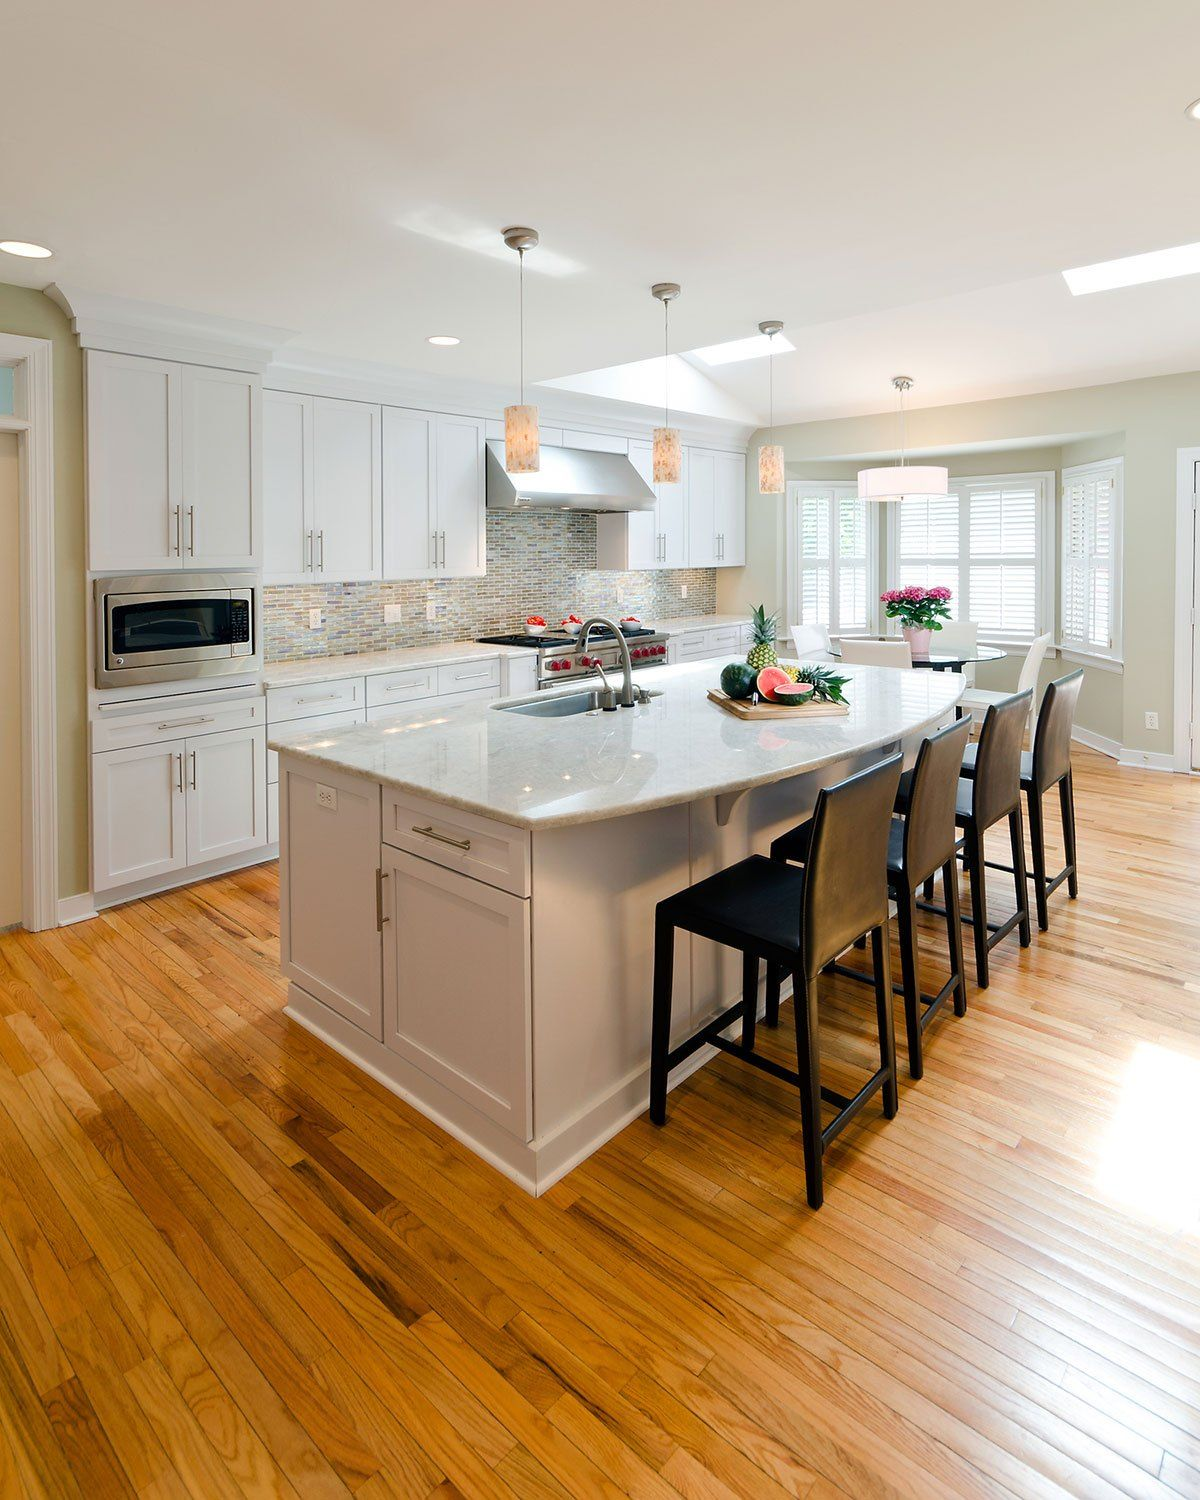 White Kitchen Counter: Top 25 Best White Granite Colors For Kitchen Countertops